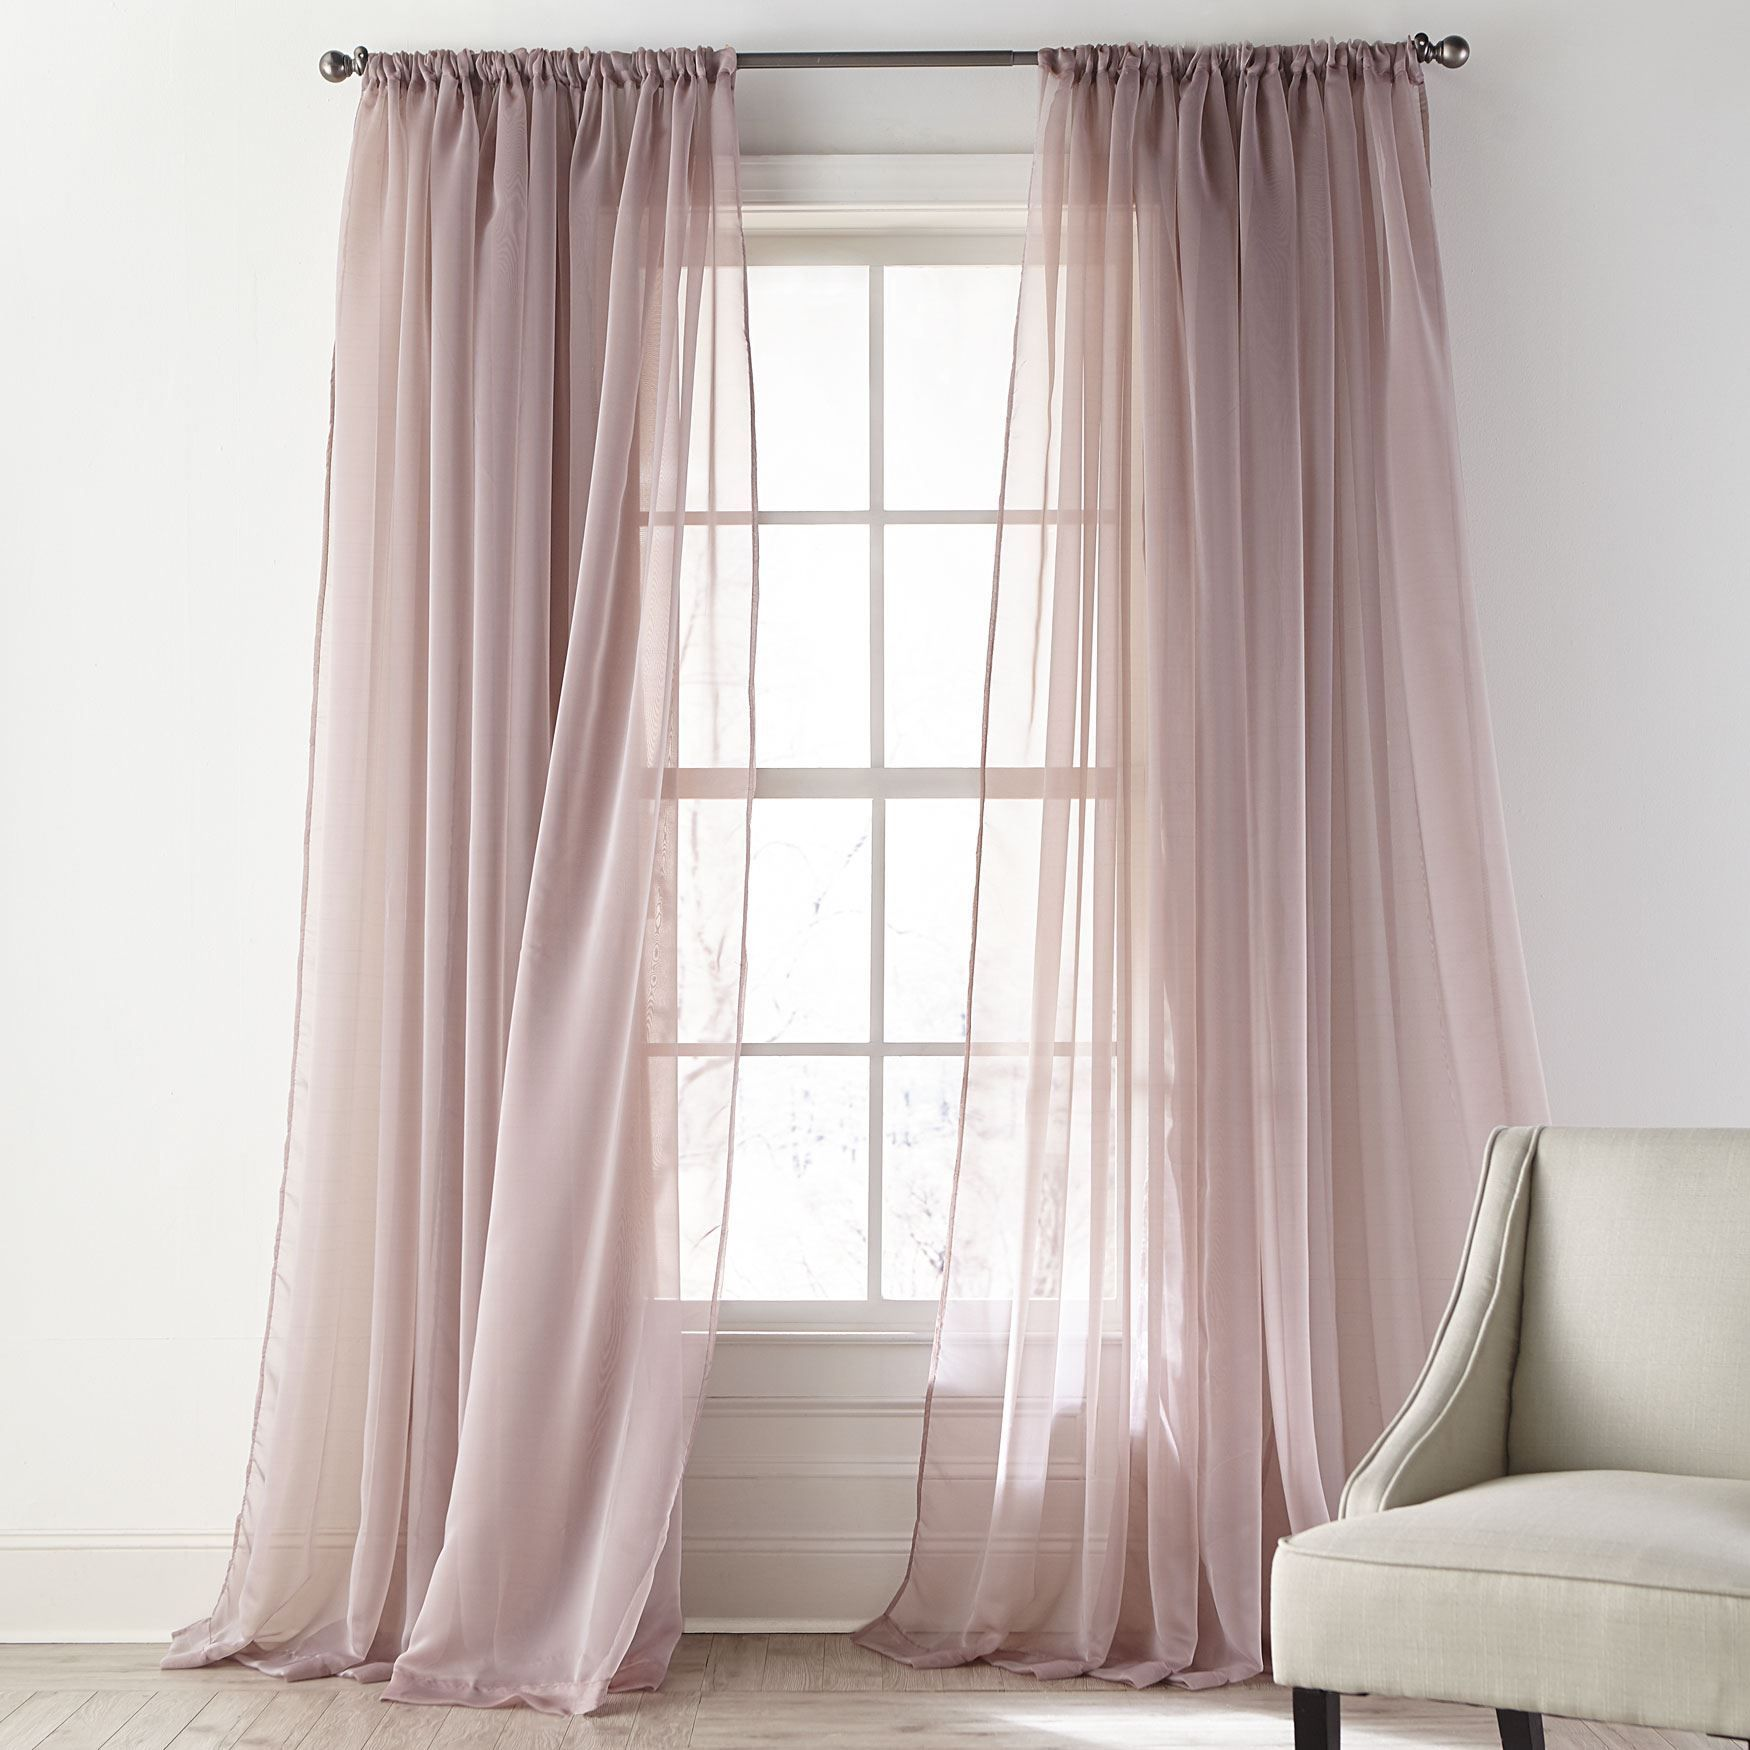 Ophelia Shimmer Curtain Mauve In 2020 Sheers Curtains Living Room Mauve Living Room Sheer Curtains Bedroom